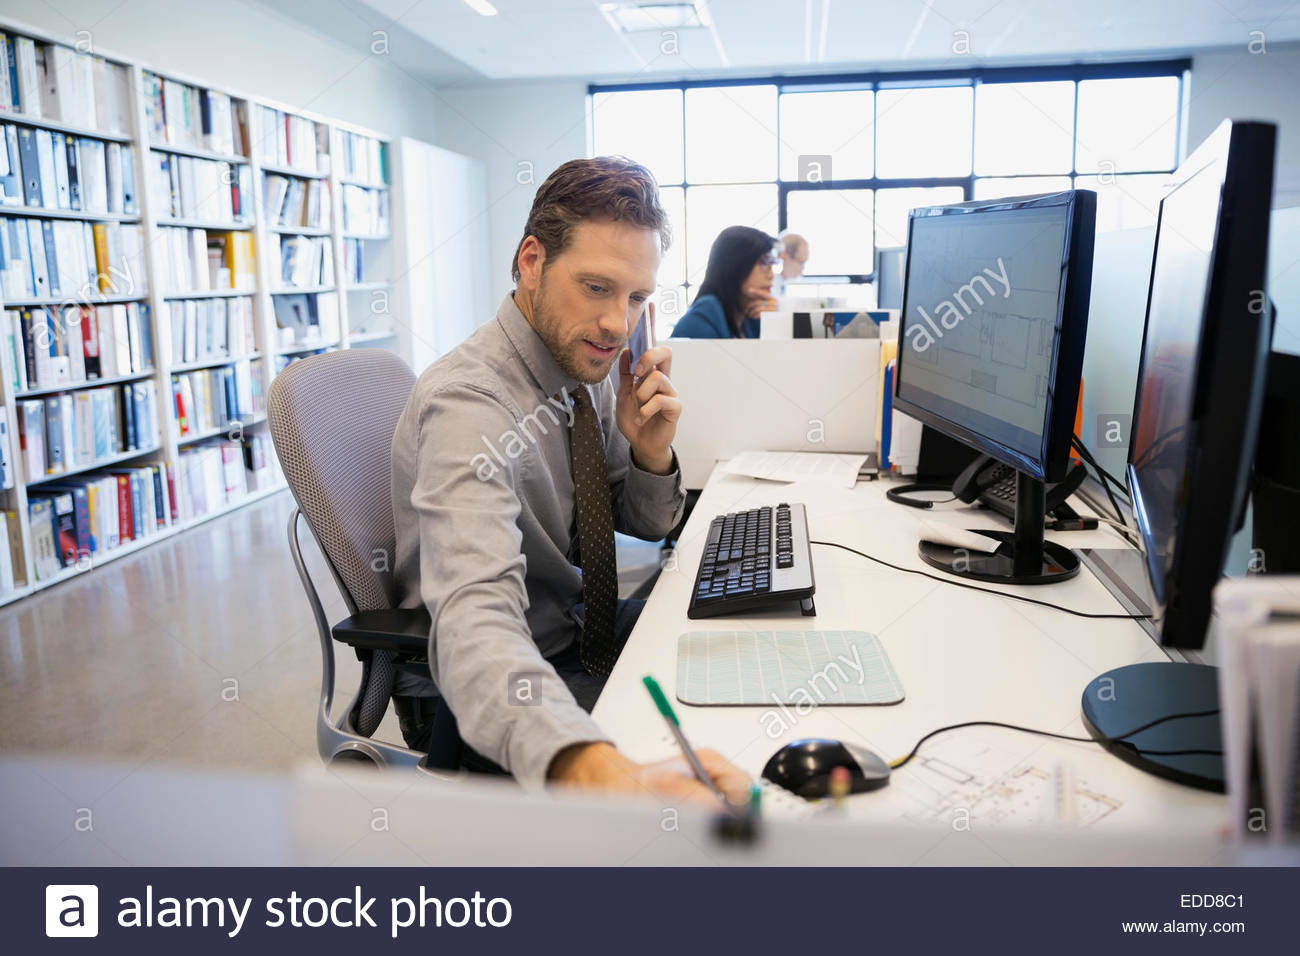 Businessman talking on cell phone at office desk Photo Stock